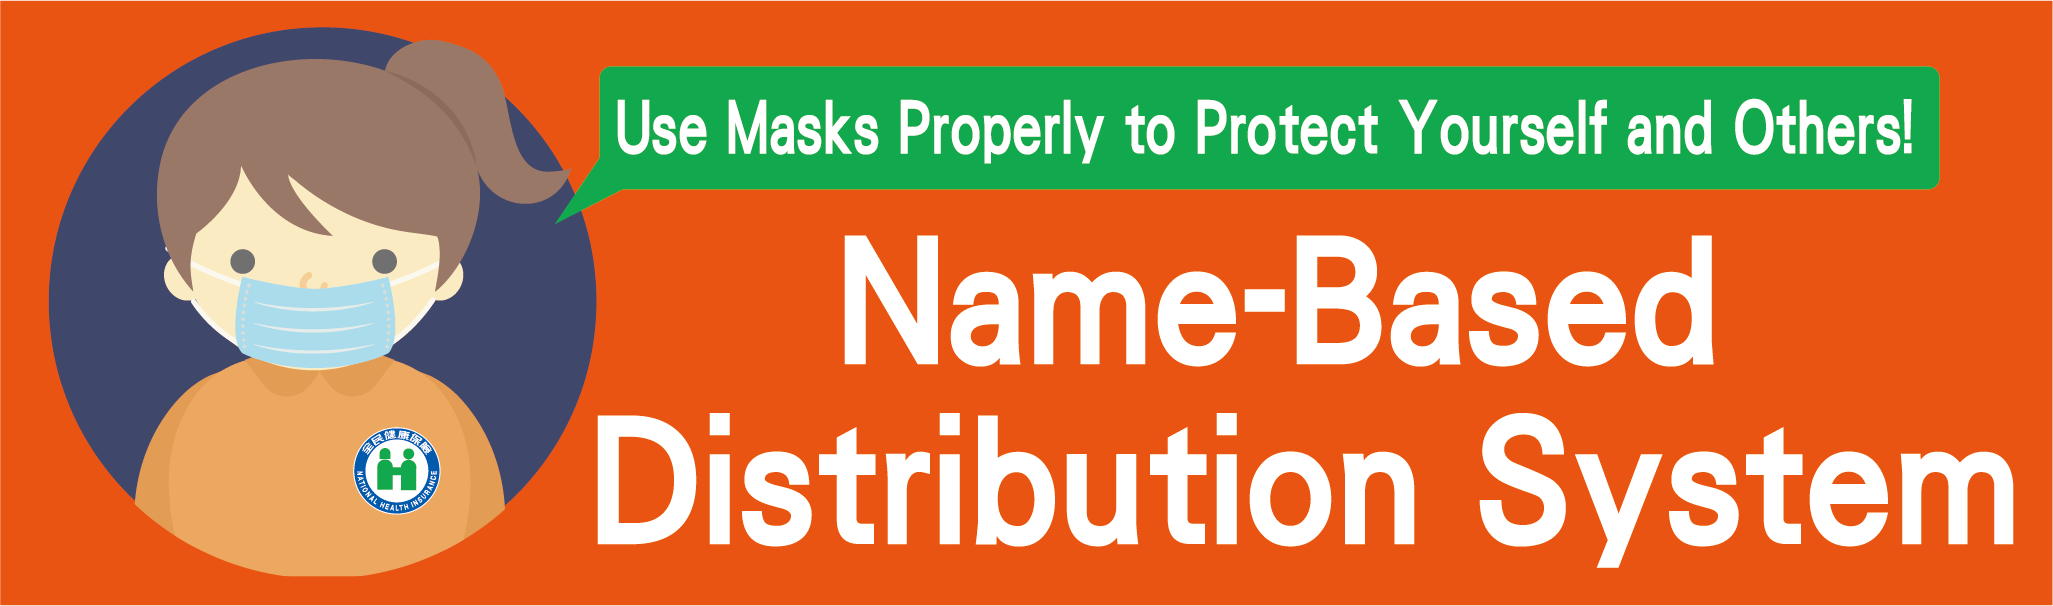 Name-Based Mask Distribution System (Start from 3/12)